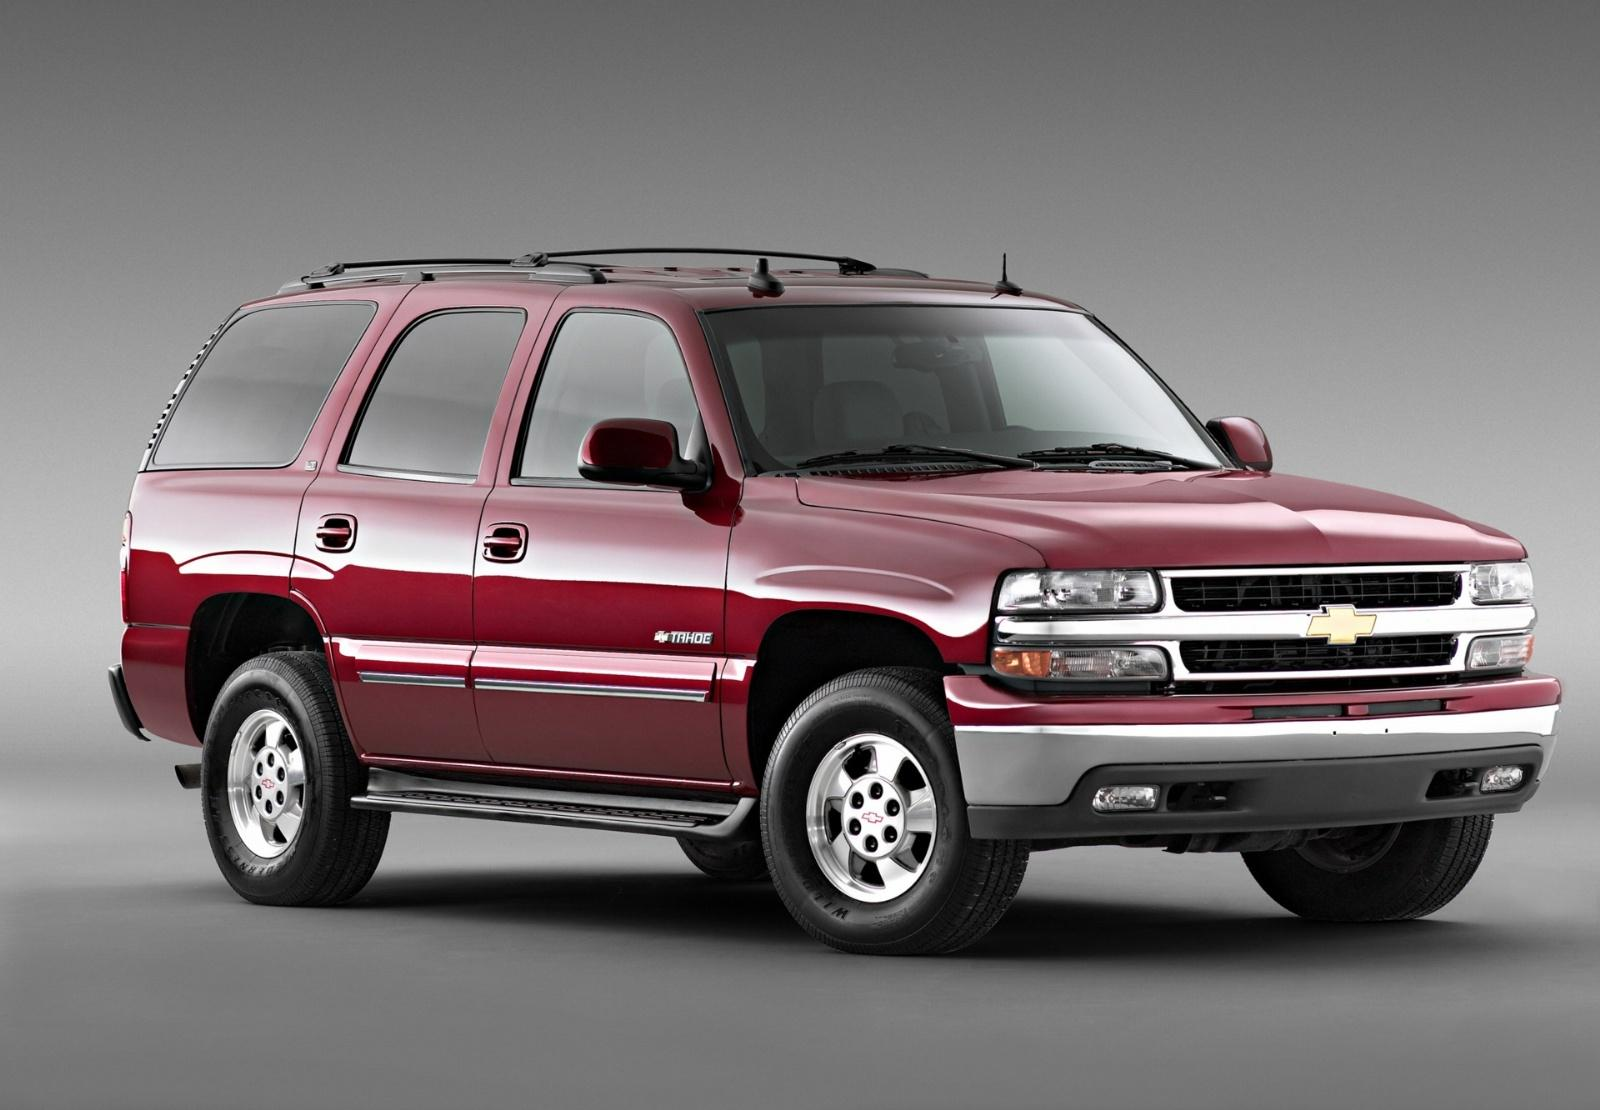 2003 Chevrolet Tahoe Information And Photos Zombiedrive 03 Fuse Box Replacement 800 1024 1280 1600 Origin